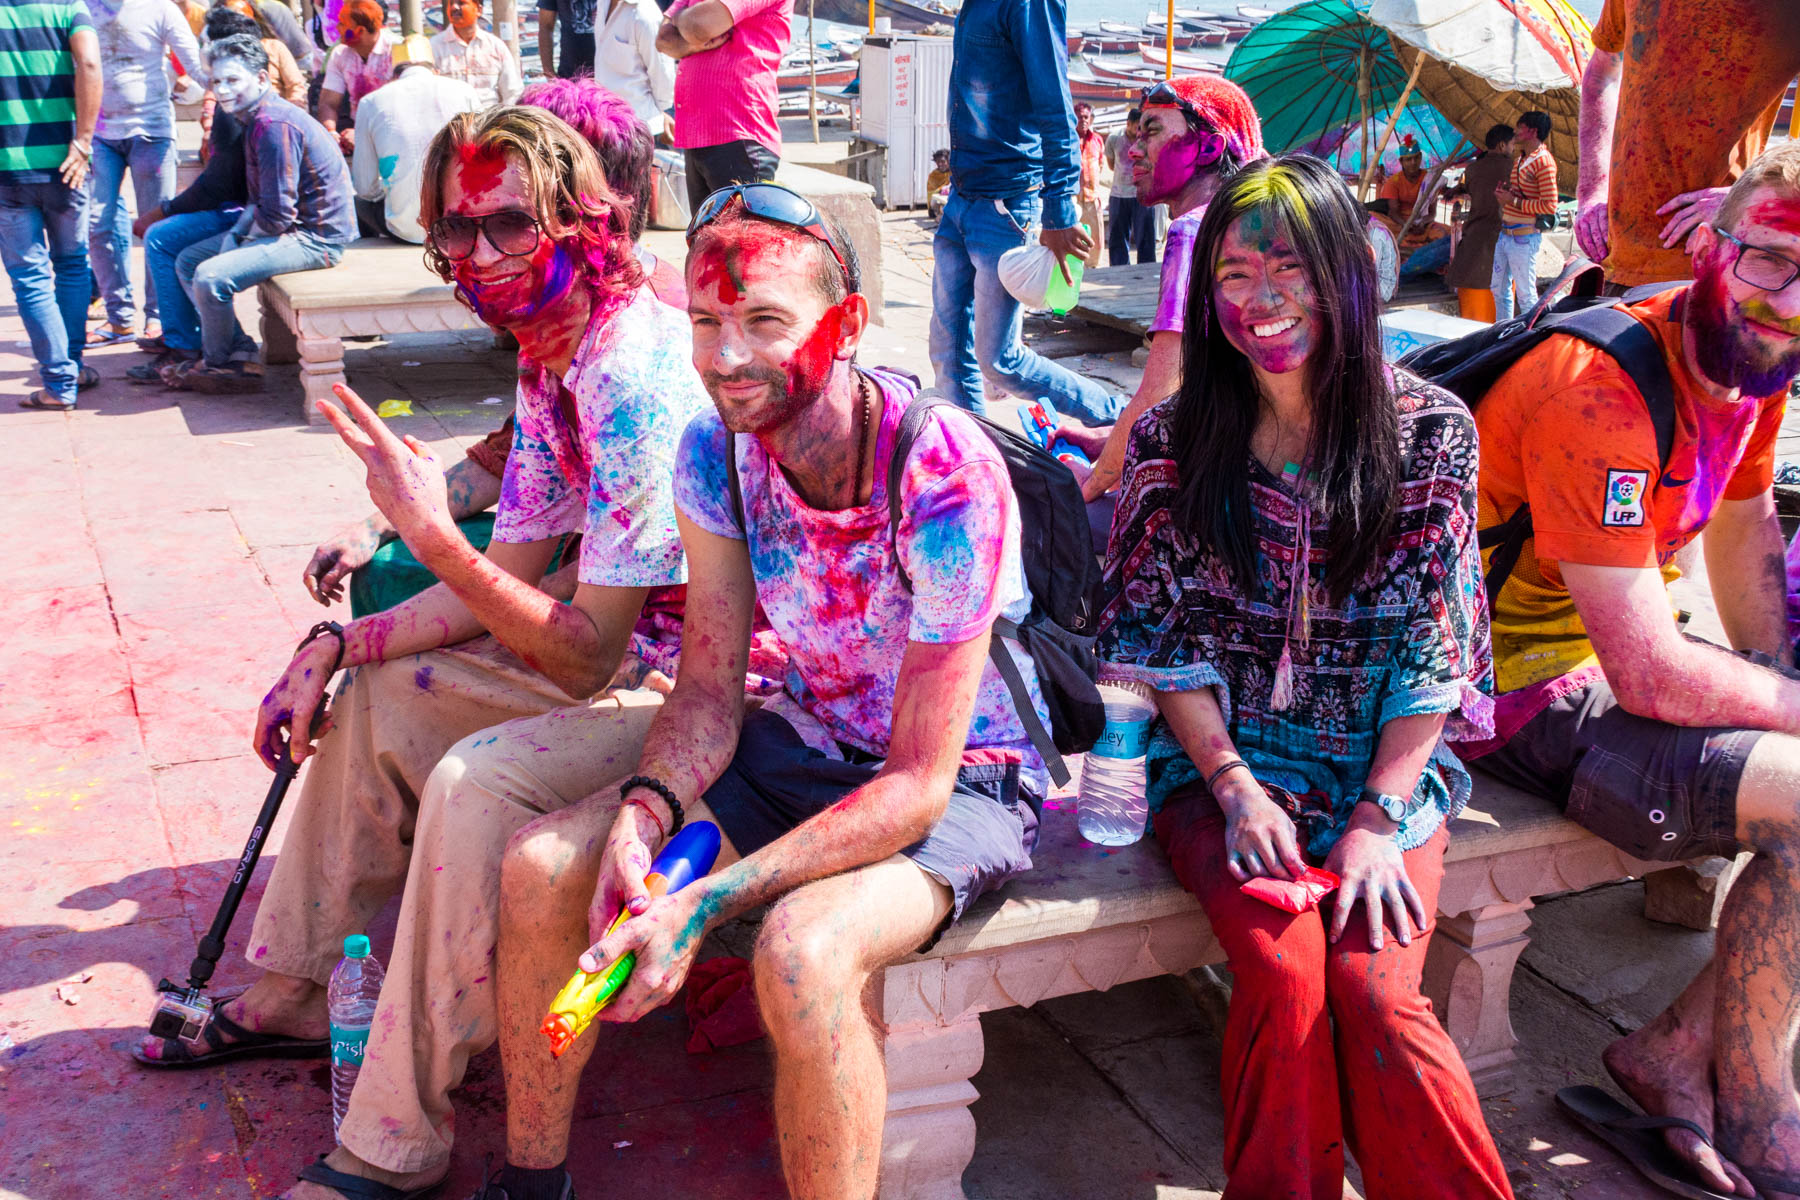 Celebrating Holi in Varanasi as a Woman - A group of foreigners for safety - Lost With Purpose